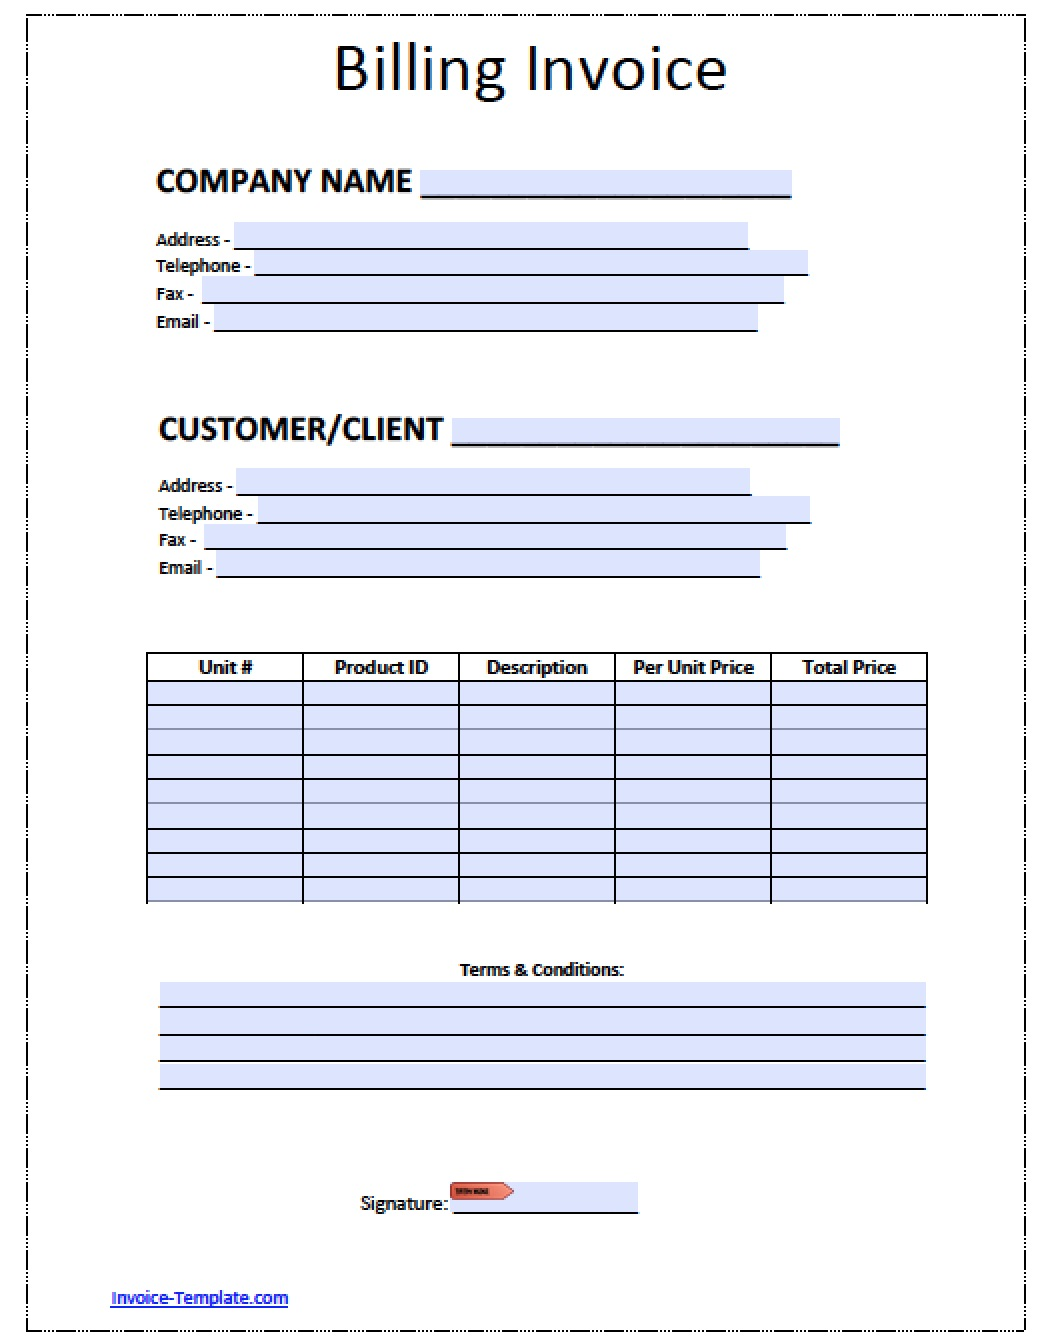 Free Billing Invoice Template Excel PDF Word Doc - Invoice format in word doc for service business